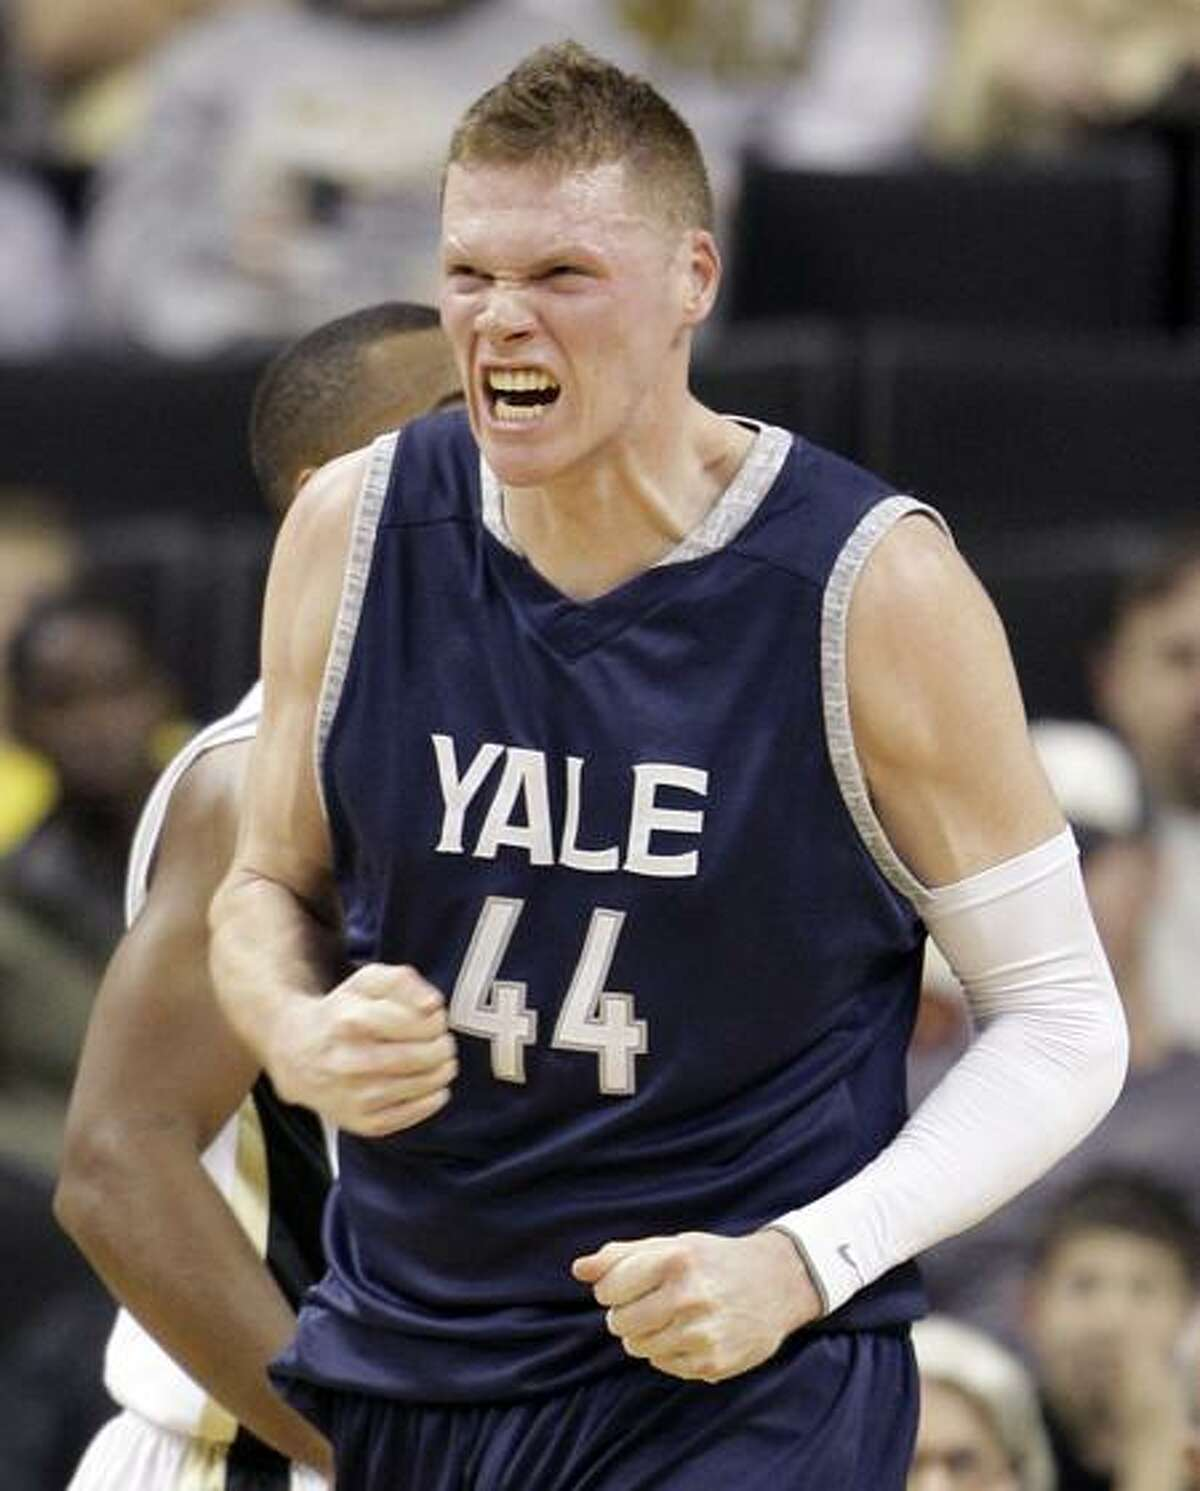 Yale's Greg Mangano reacts after making a basket and being fouled during the first half of an NCAA college basketball game against Wake Forest in Winston-Salem, N.C., Thursday, Dec. 29, 2011. (AP Photo/Chuck Burton)